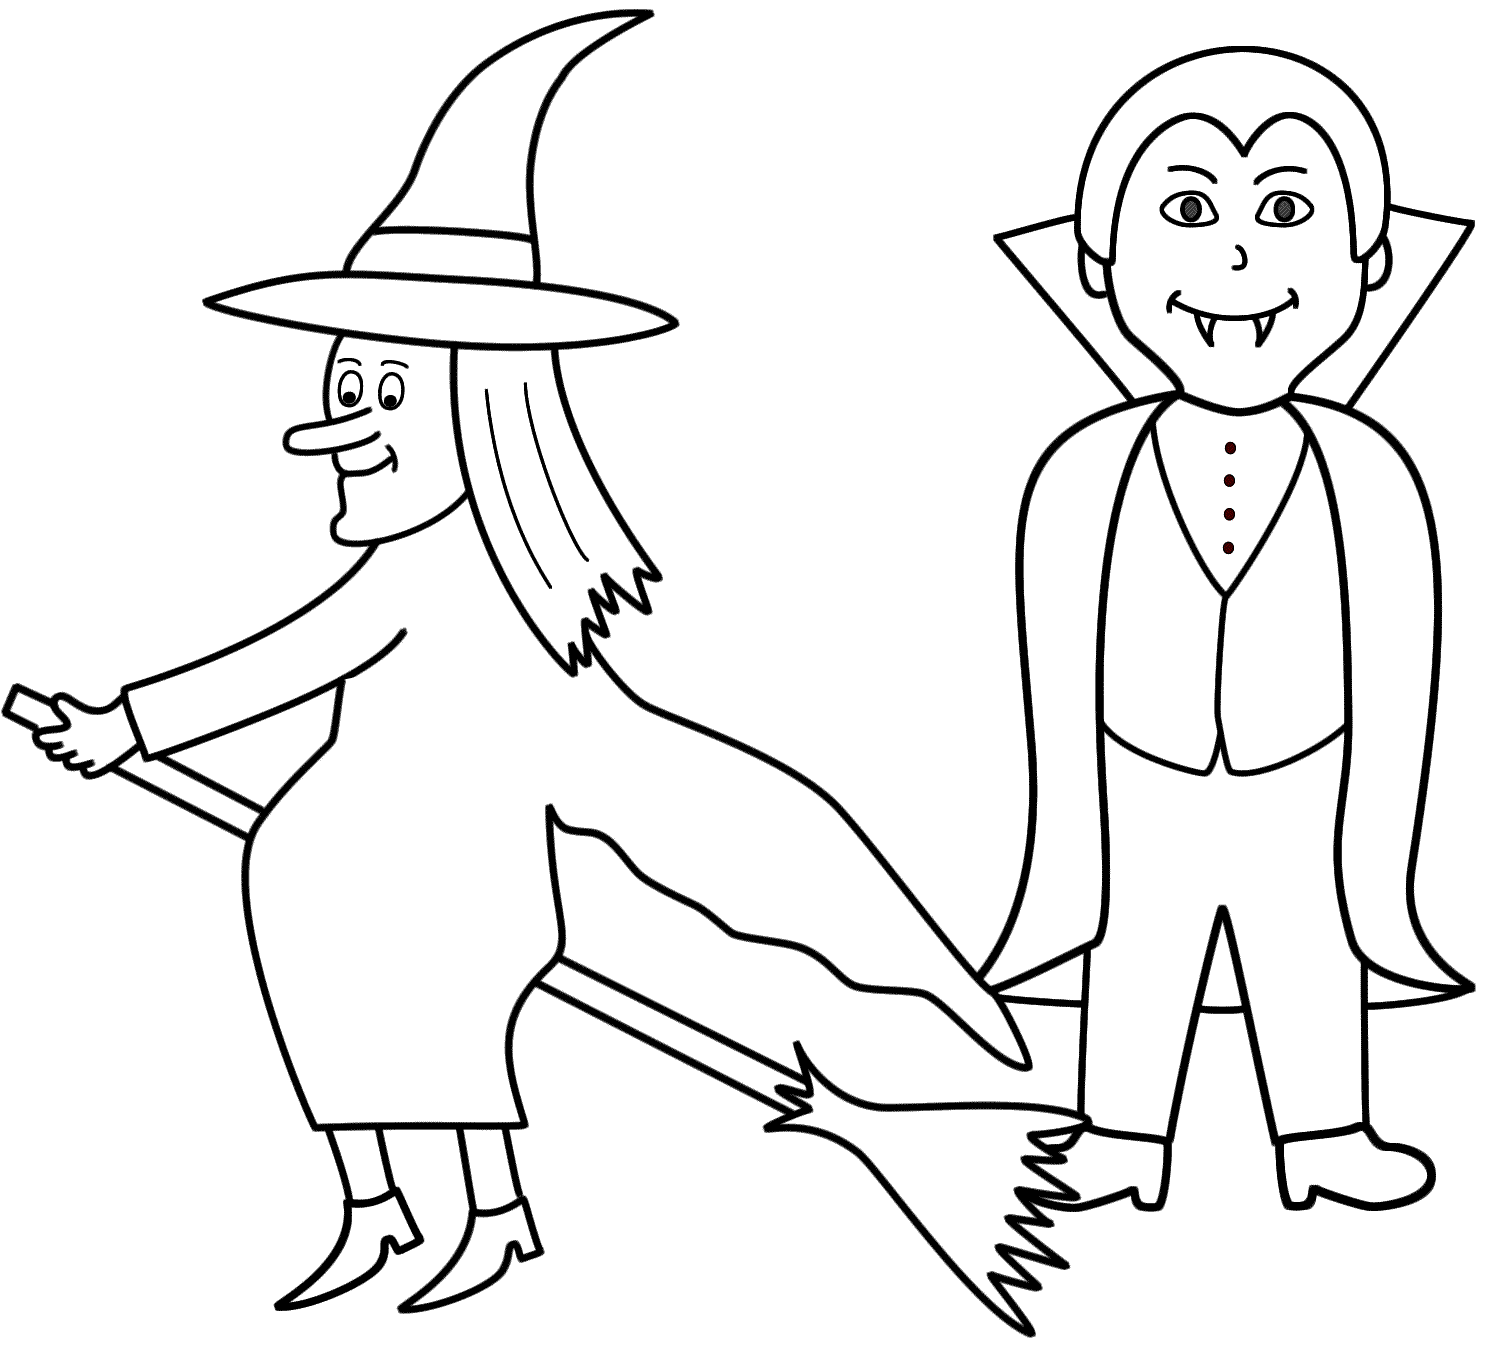 Halloween vampire coloring pages az coloring pages for Vampires coloring pages